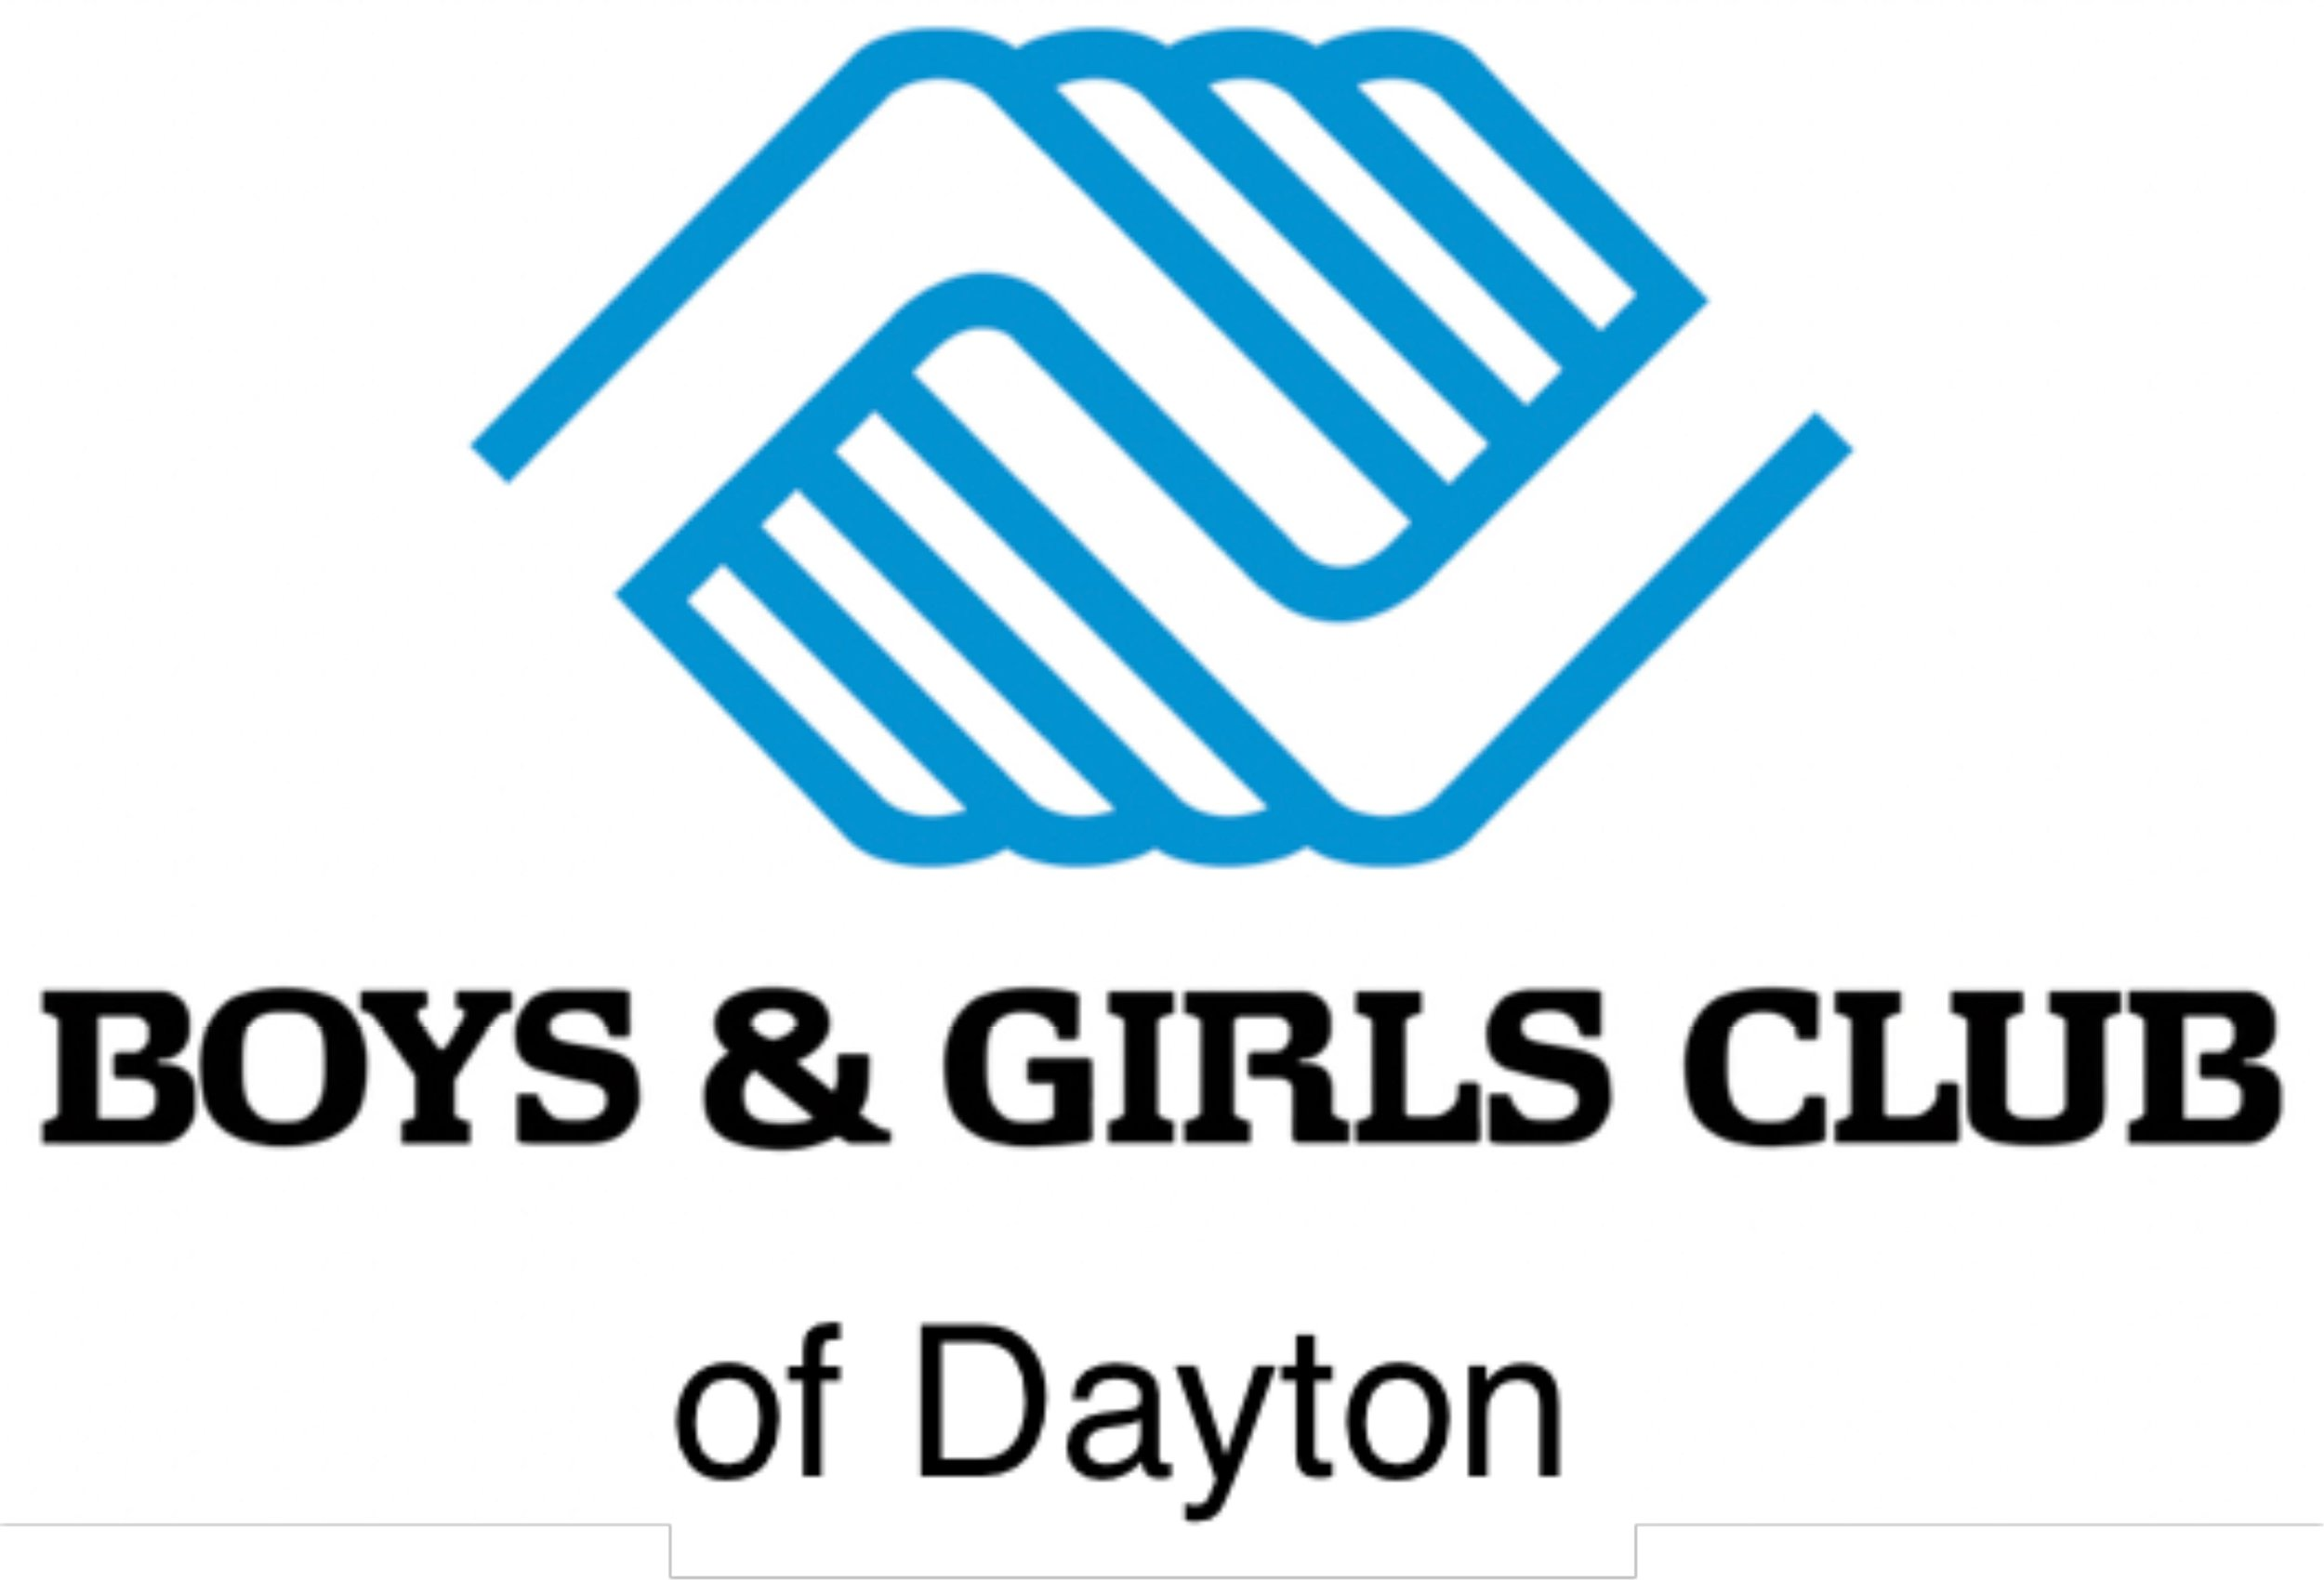 Boys & Girls Club of Dayton.jpg